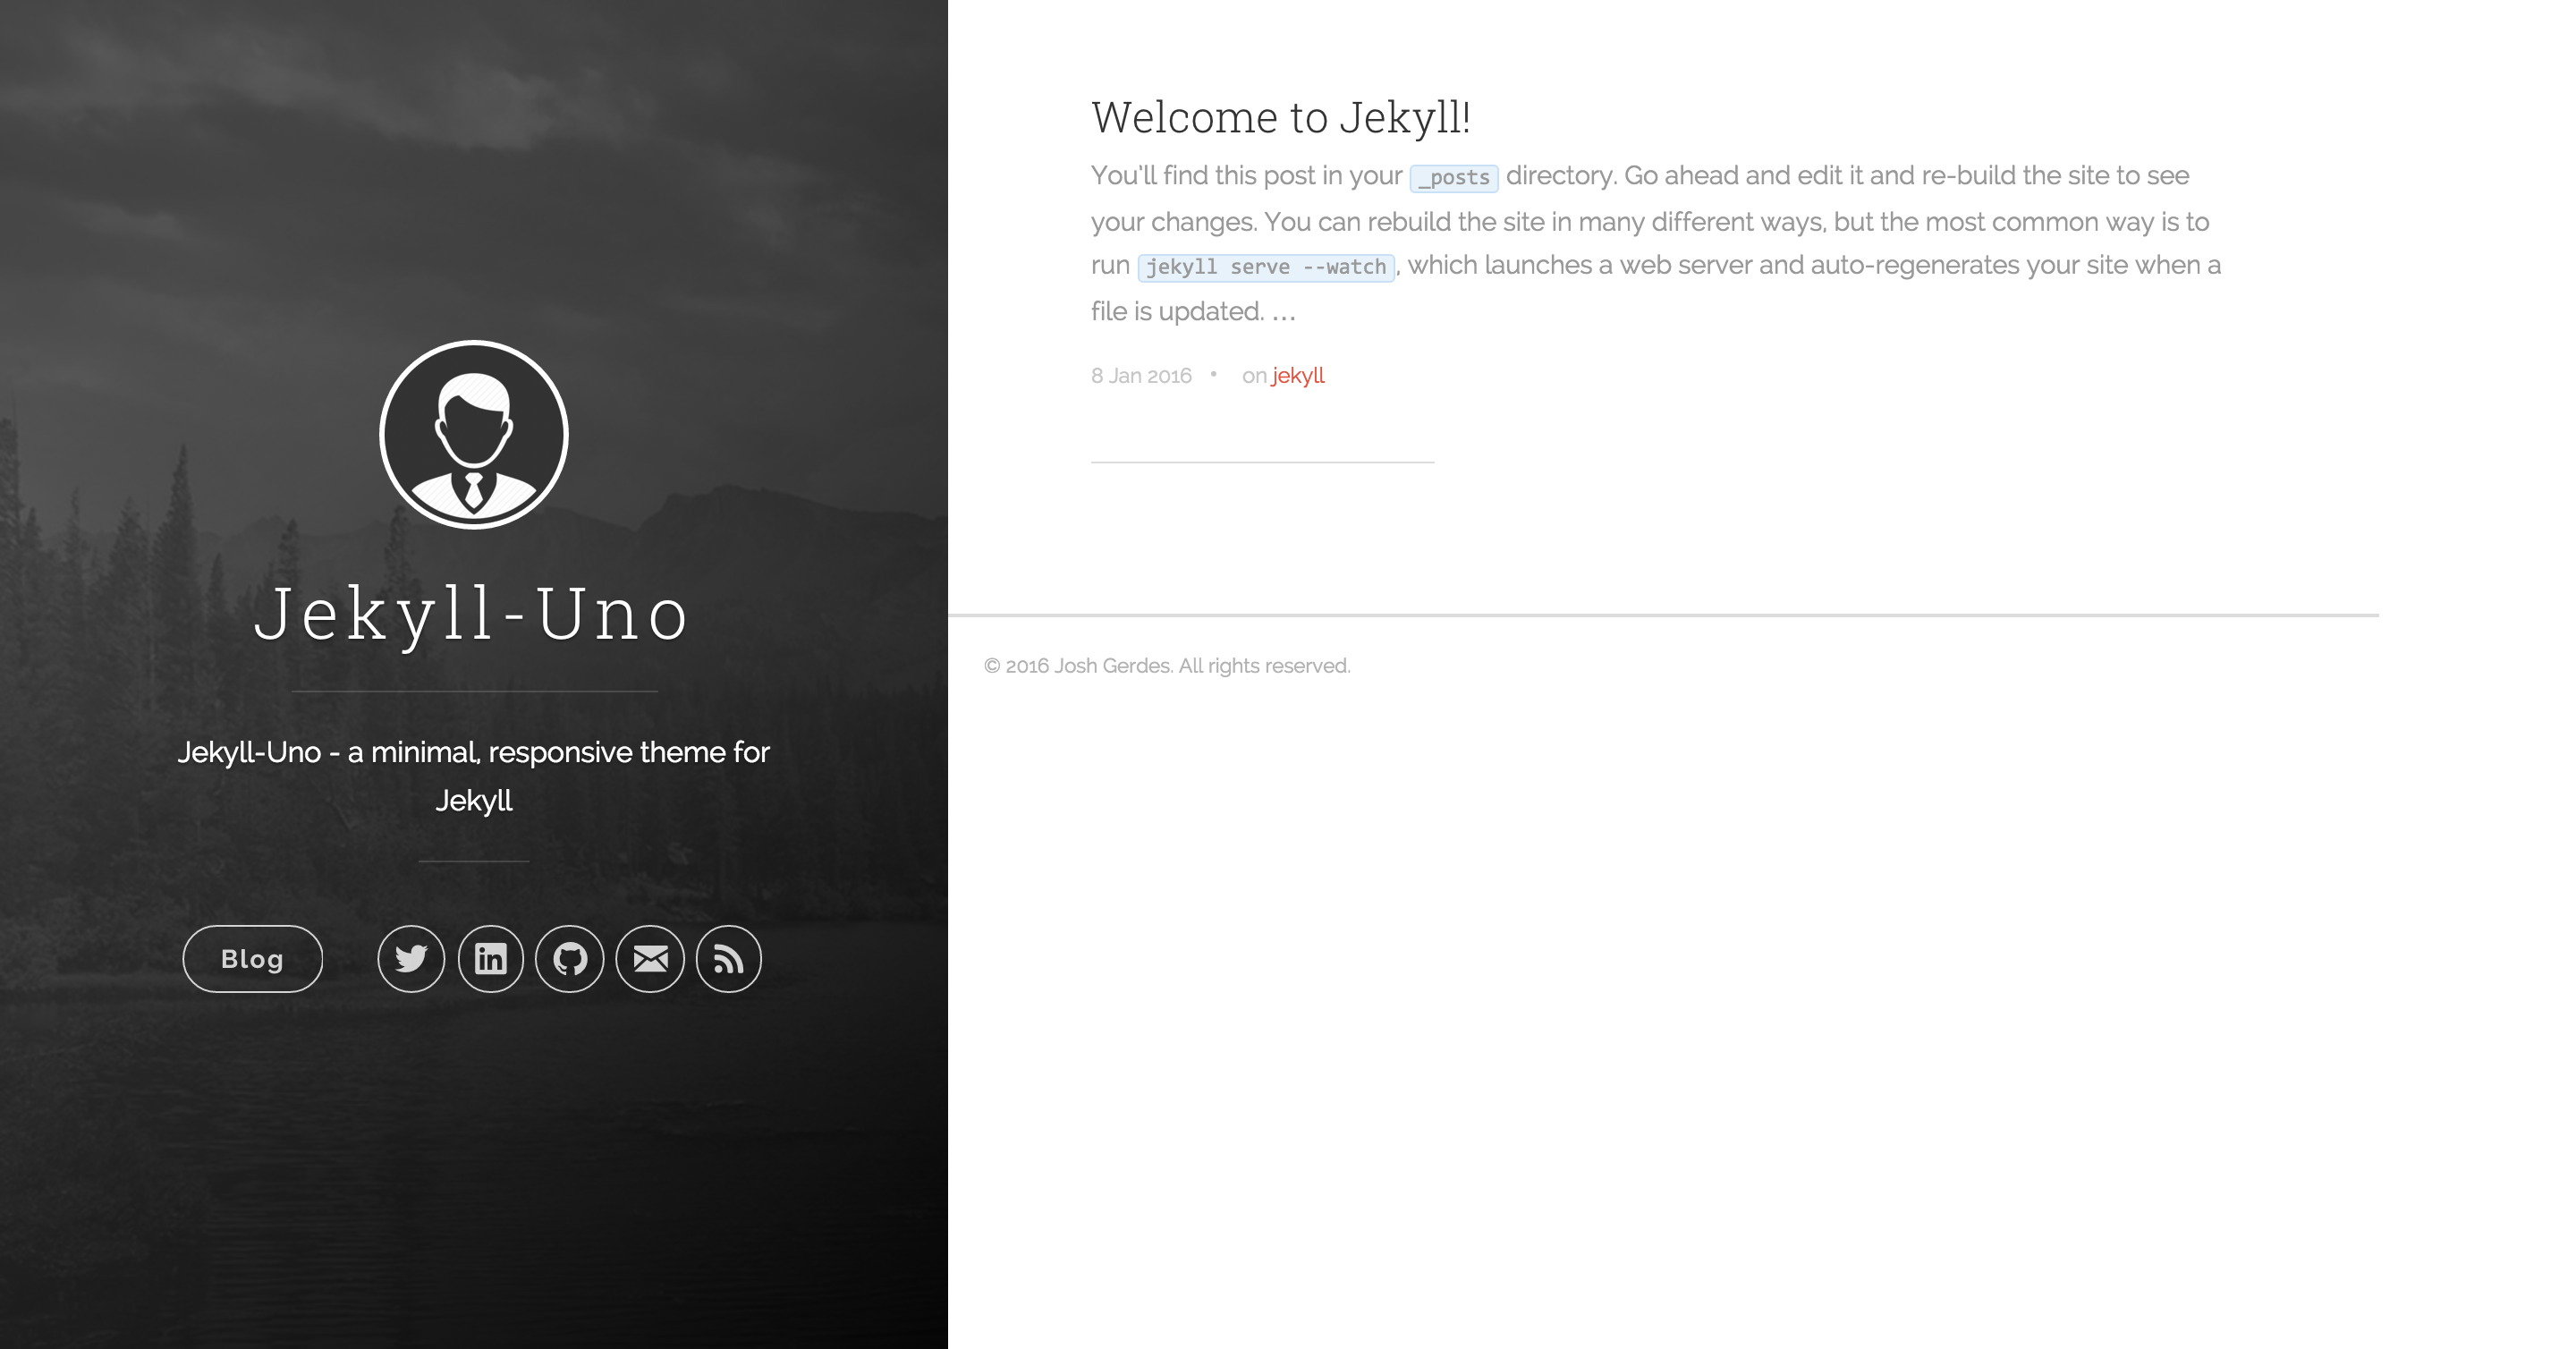 Jekyll-Uno Theme screenshot